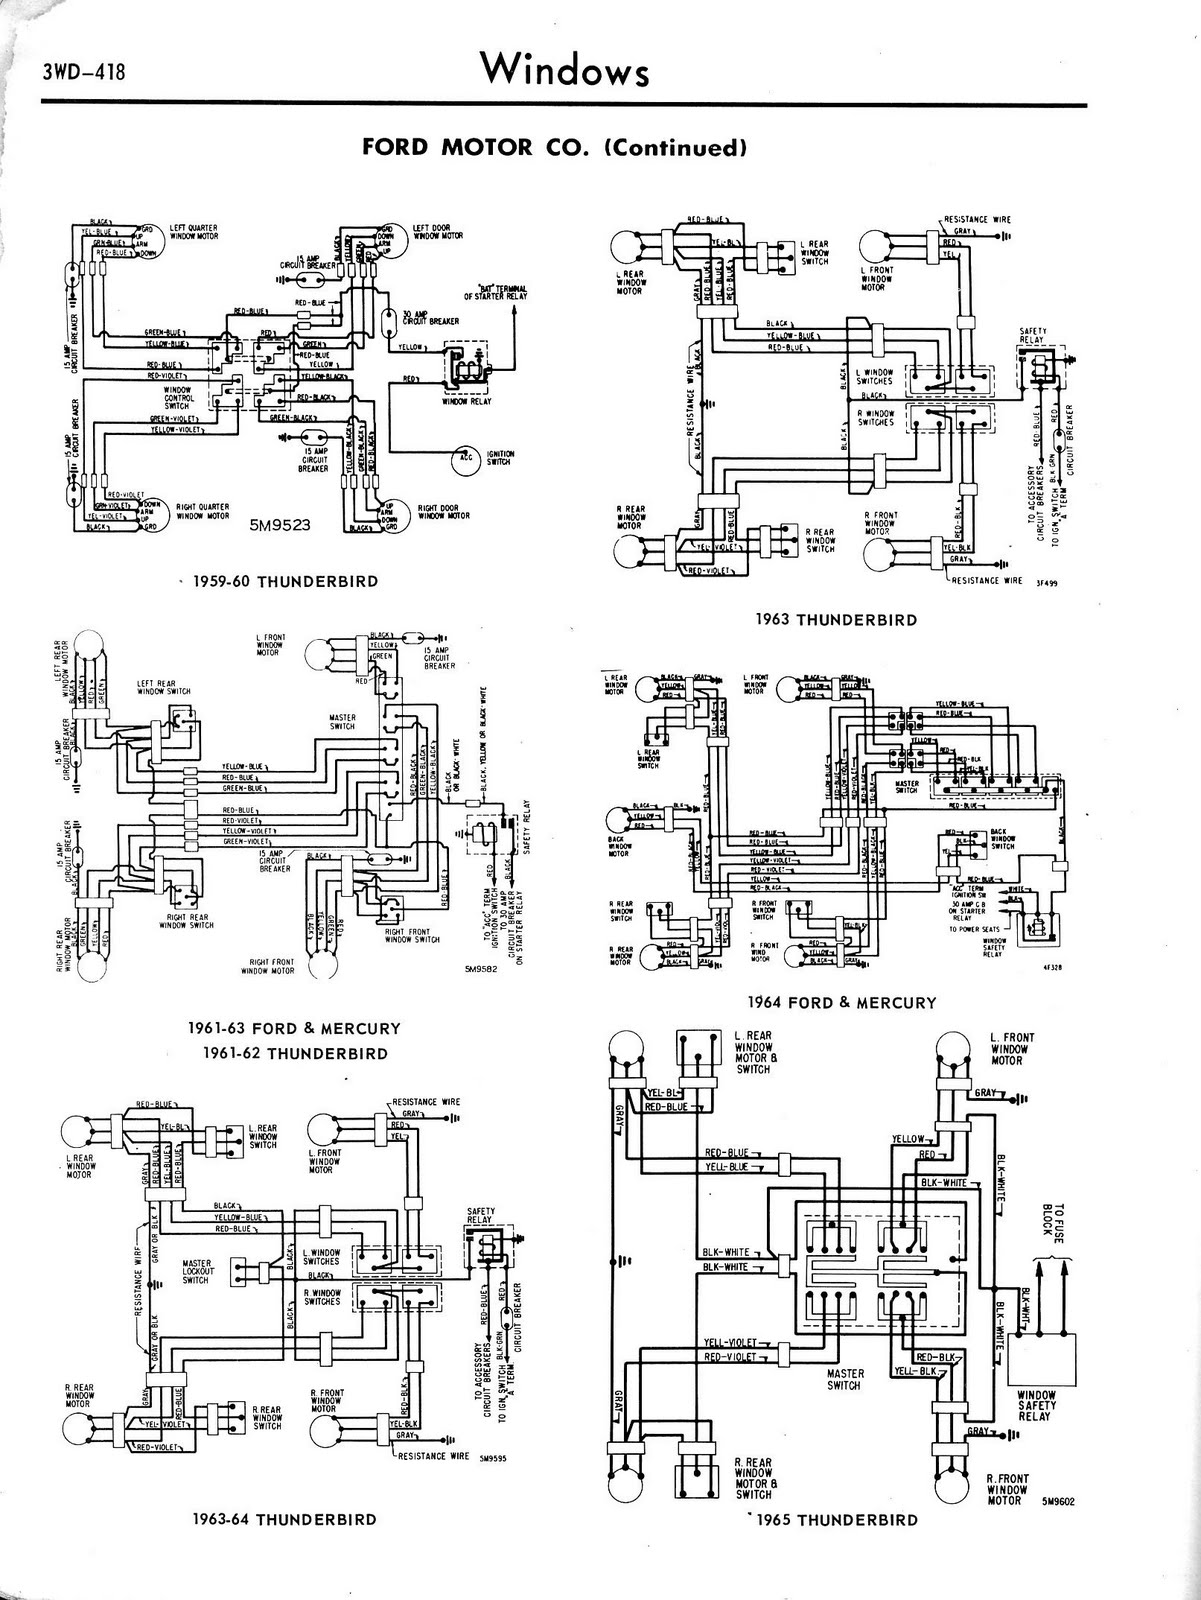 1965+Ford+Thunderbird+Window+Controls+Diagram wiring diagram for 1972 ford f100 the wiring diagram  at bakdesigns.co